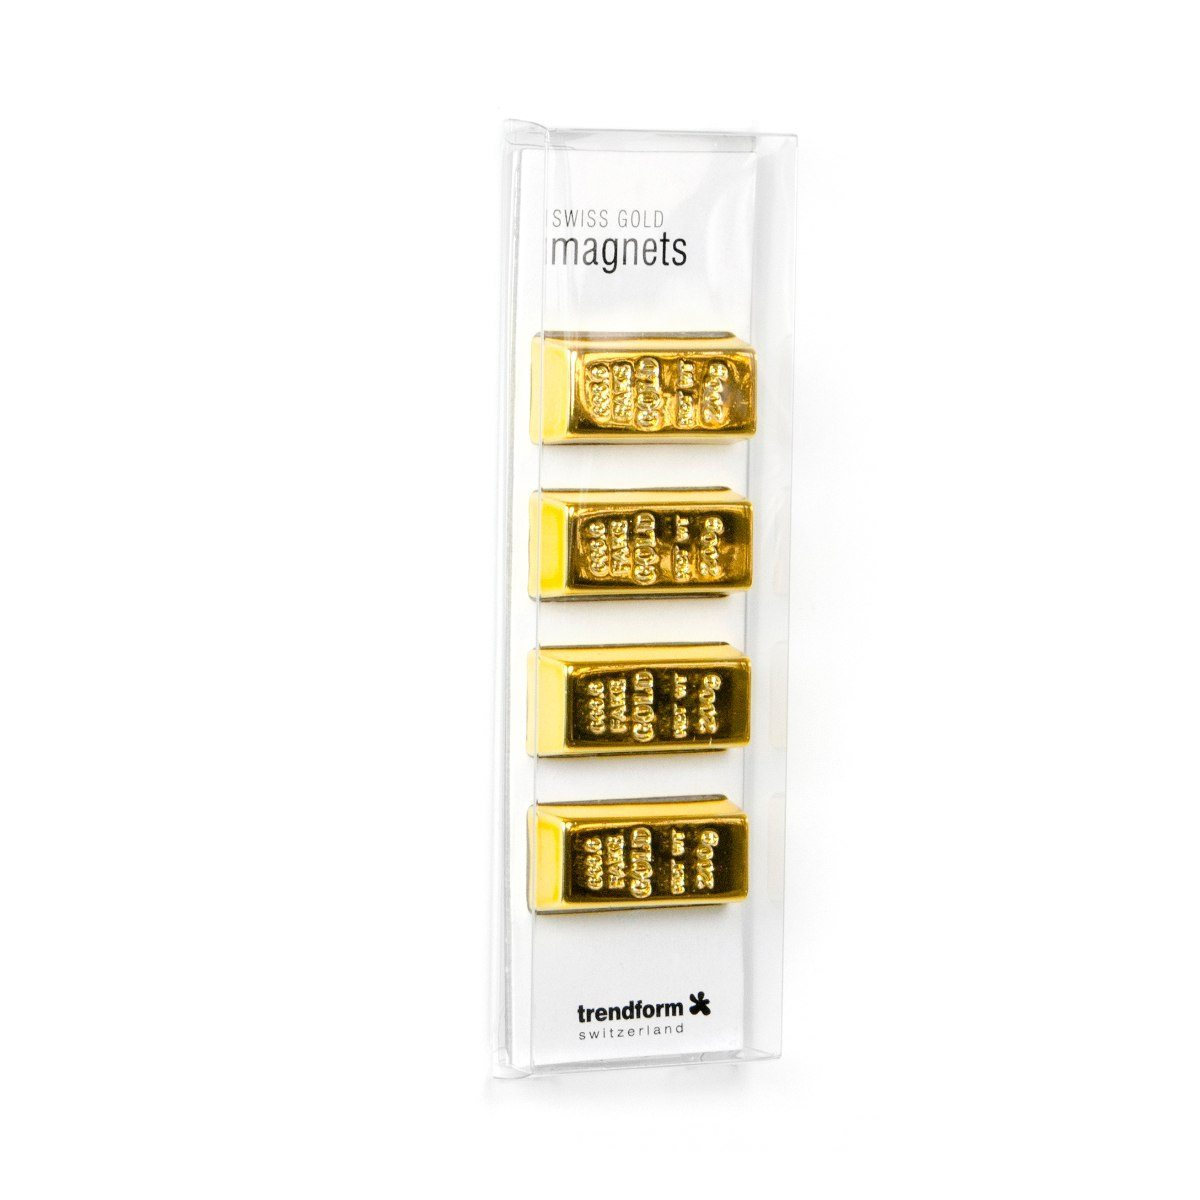 Magnetset Swiss gold